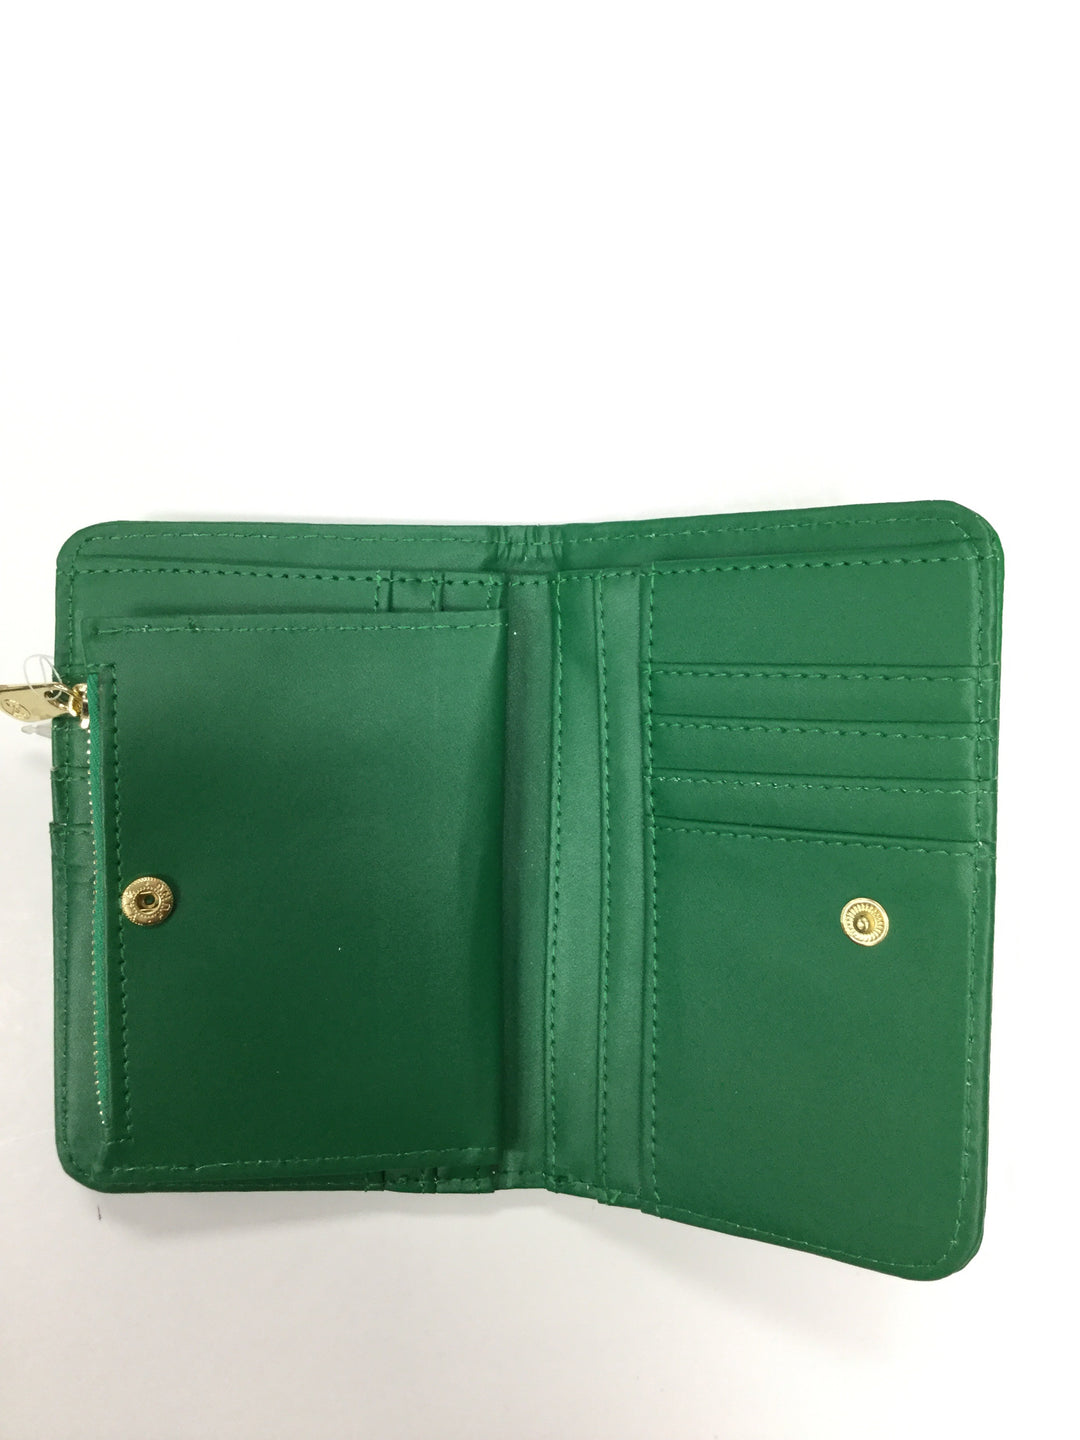 Photo #1 - BRAND: ADRIENNE VITTADINI <BR>STYLE: WALLET <BR>COLOR: KELLY GREEN <BR>SIZE: SMALL <BR>SKU: 155-15545-200679